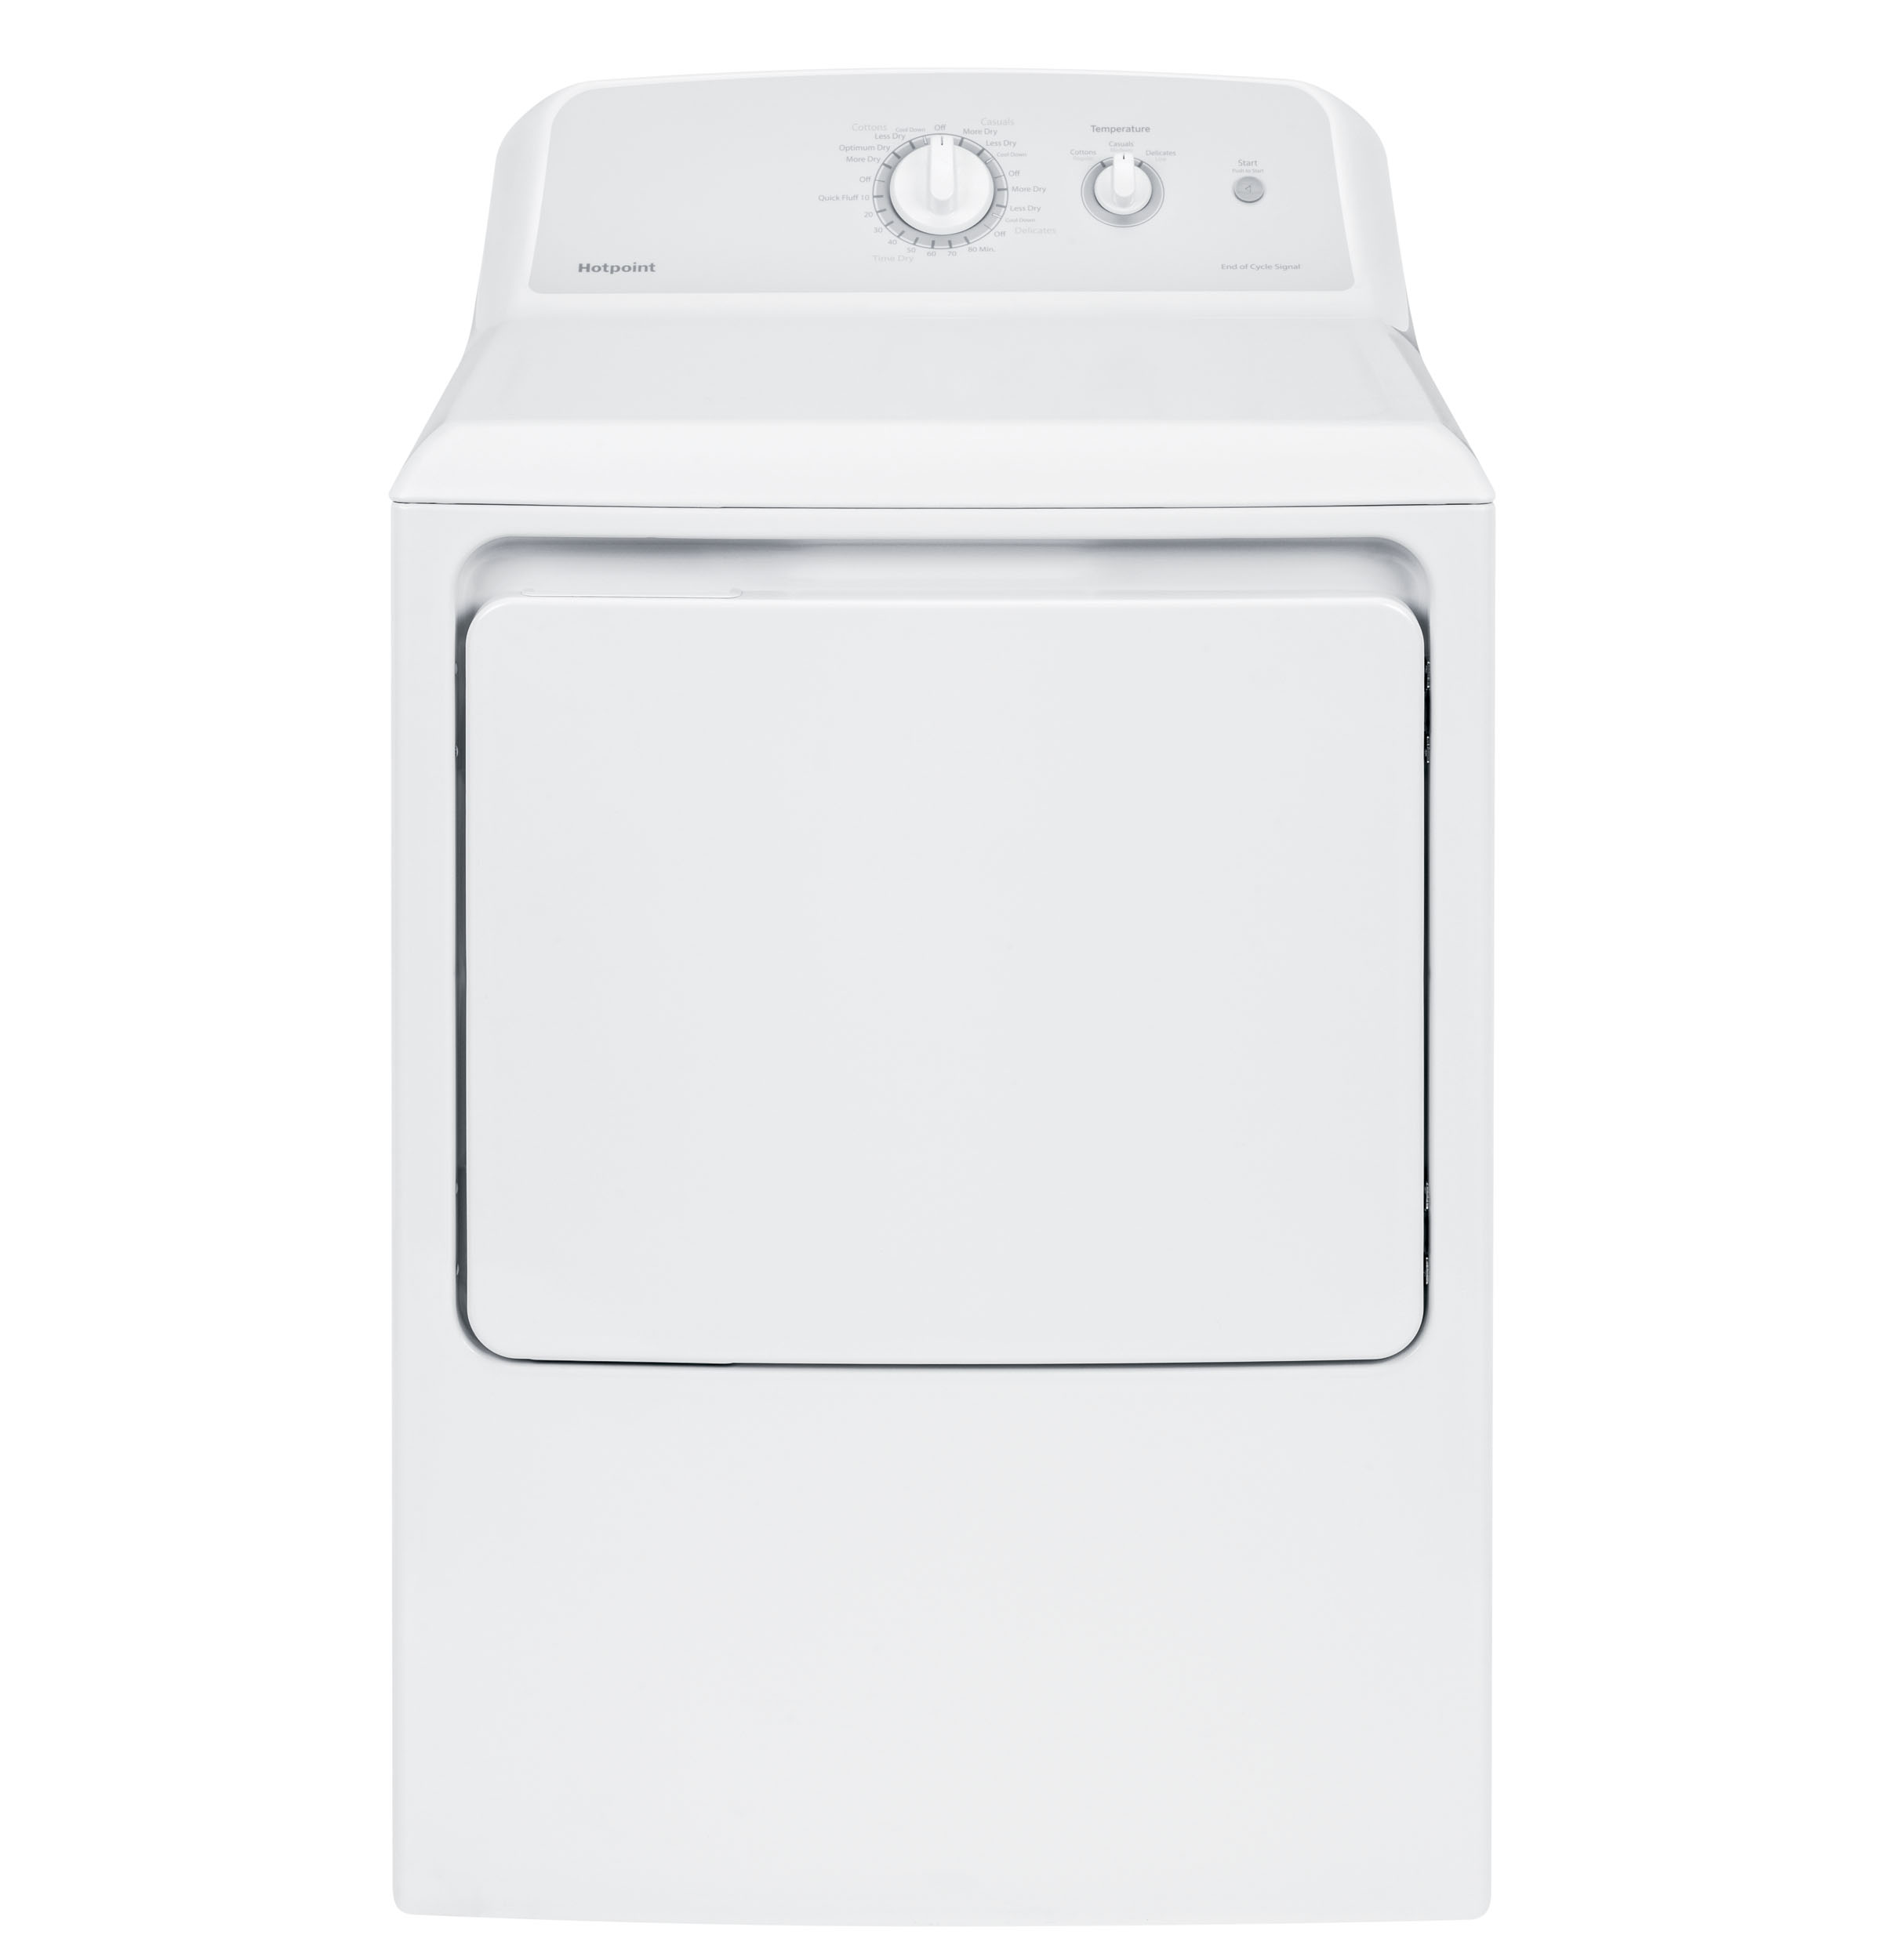 Hotpoint Hotpoint® 6.2 cu. ft. Capacity aluminized alloy Gas Dryer